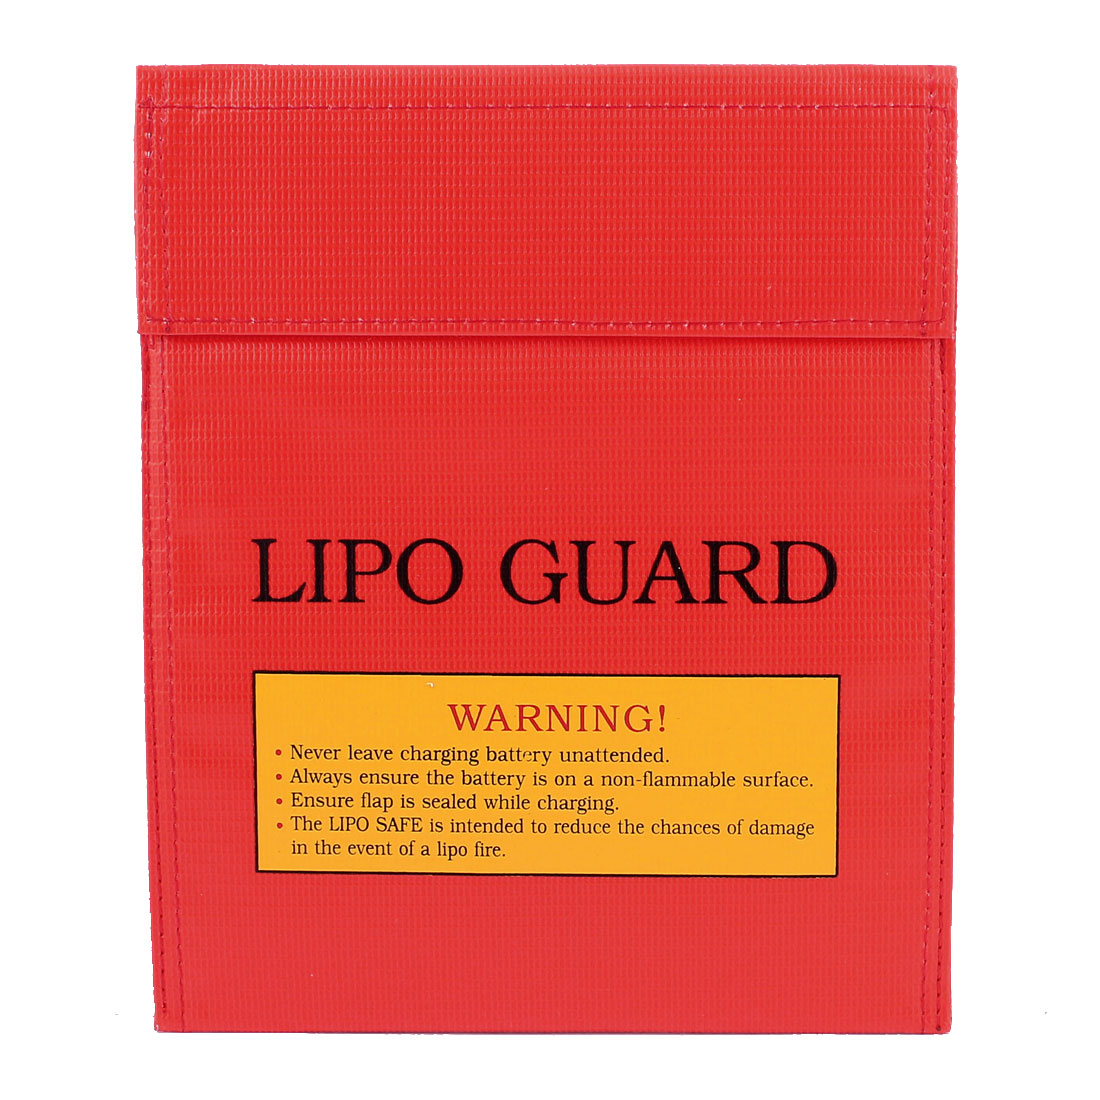 30cm x 23cm Red RC LiPo Battery Safety Guard Fireproof Charging Bag